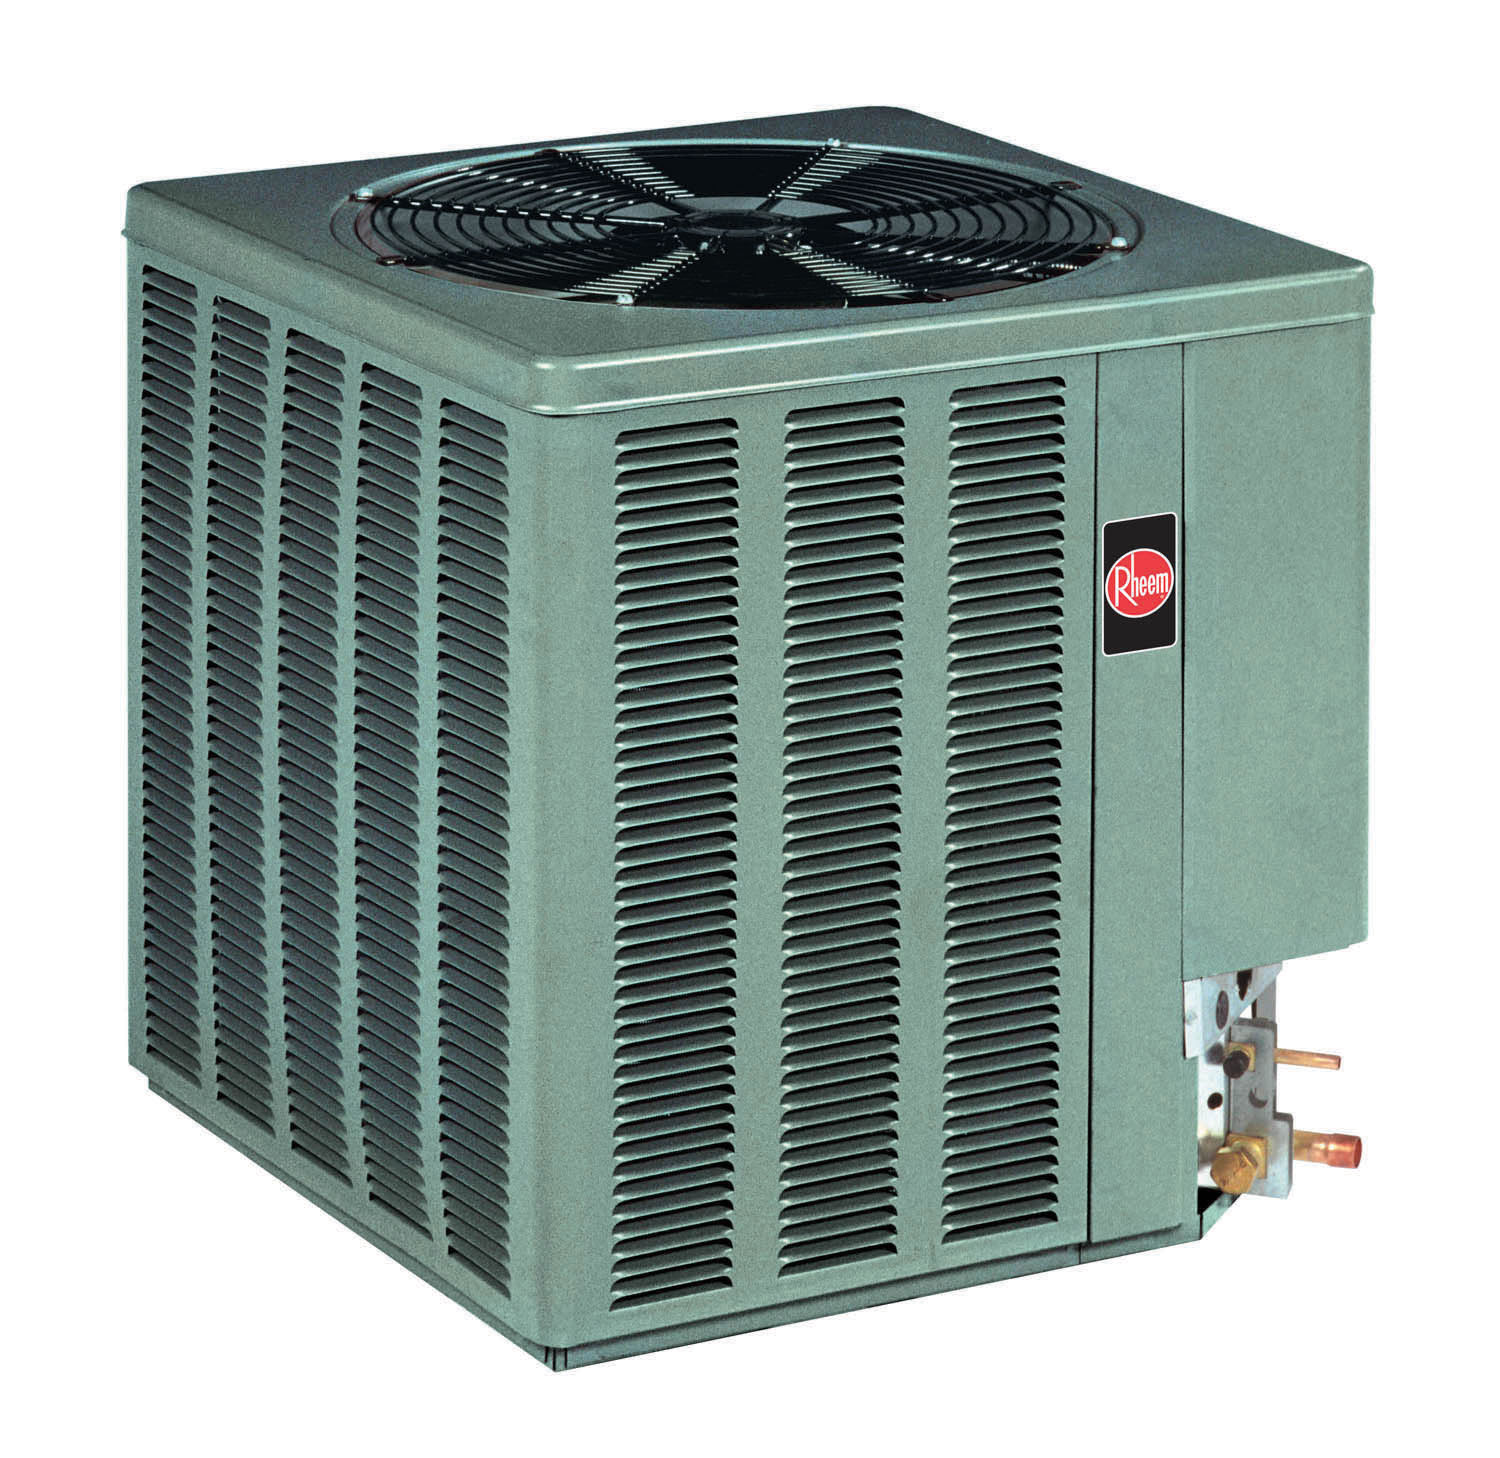 #994A32 Rheem High Efficiency Air Conditioners Best 2113 Condenser For Ac Unit photos with 1500x1458 px on helpvideos.info - Air Conditioners, Air Coolers and more